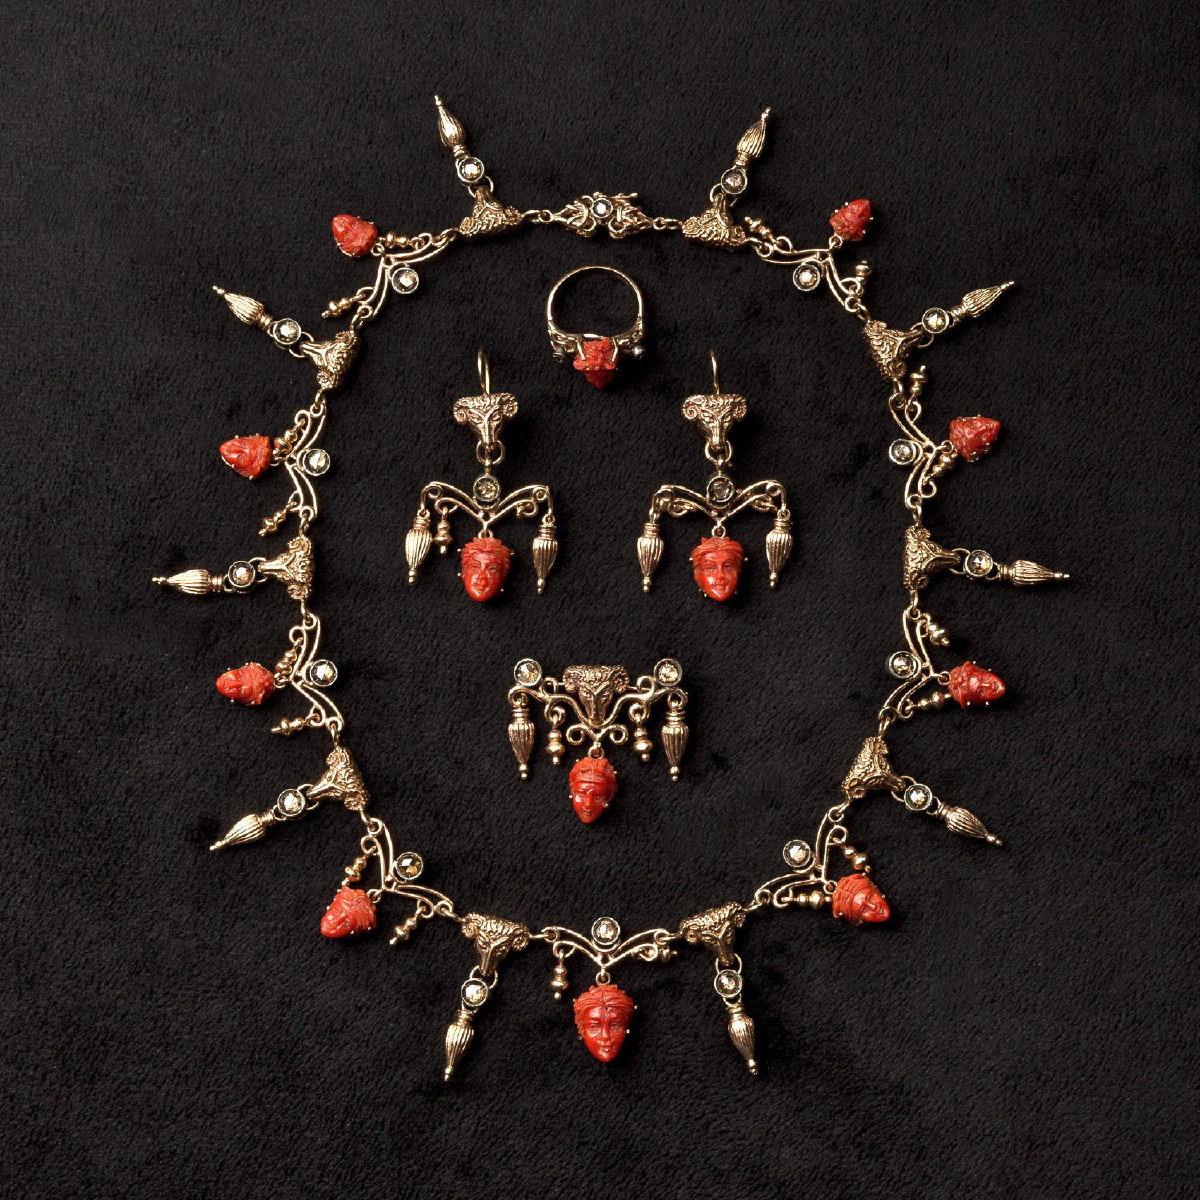 Photo of RARE REVIVAL OLD PARURE WITH DIAMONDS, CORAL AND GOLD